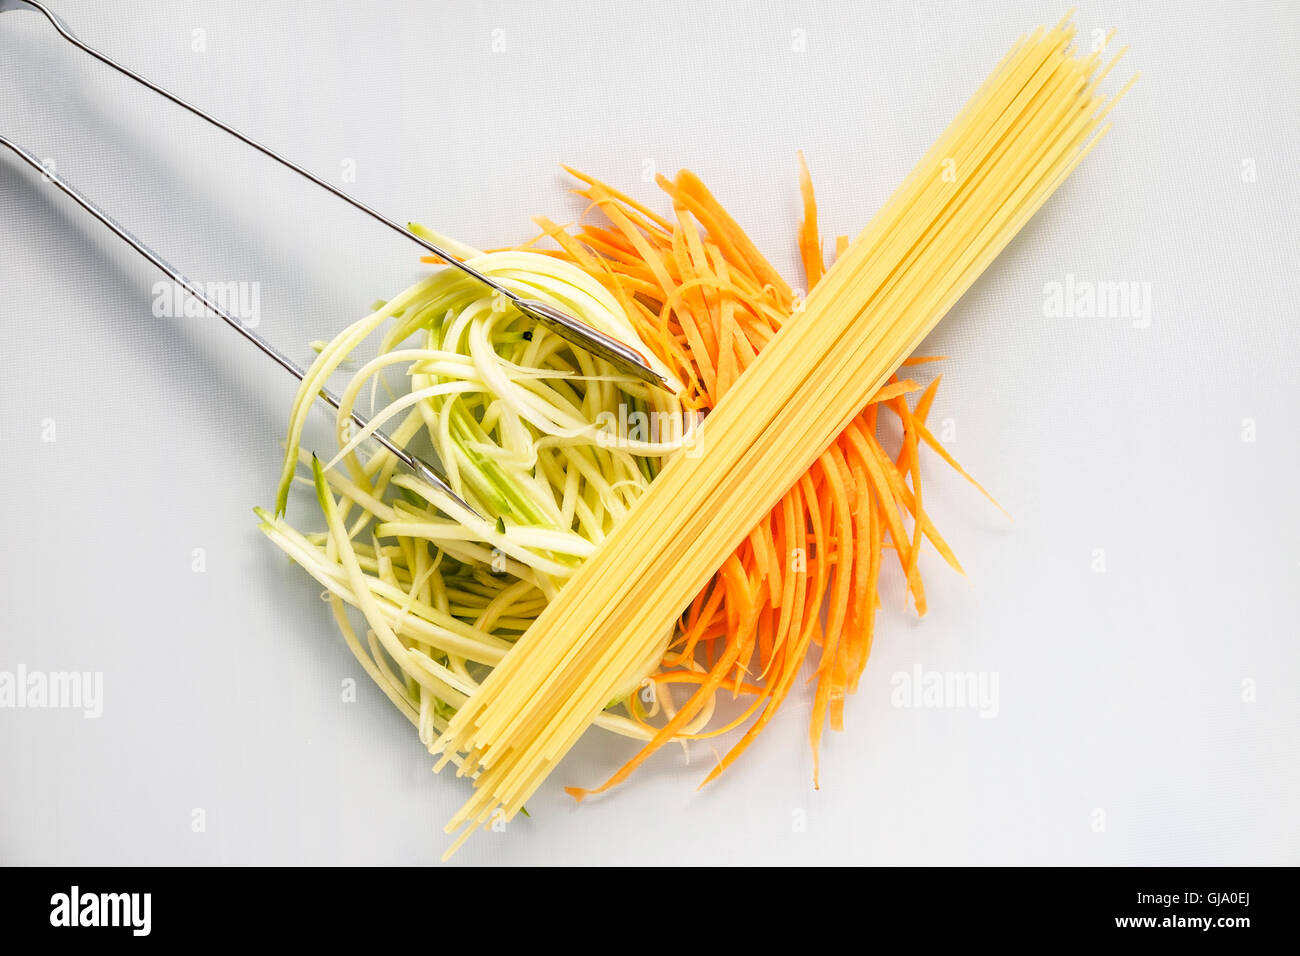 Spiralized zucchini courgette and carrot as a healthy substitute for the spaghetti lying on top with stainless steel - Stock Image